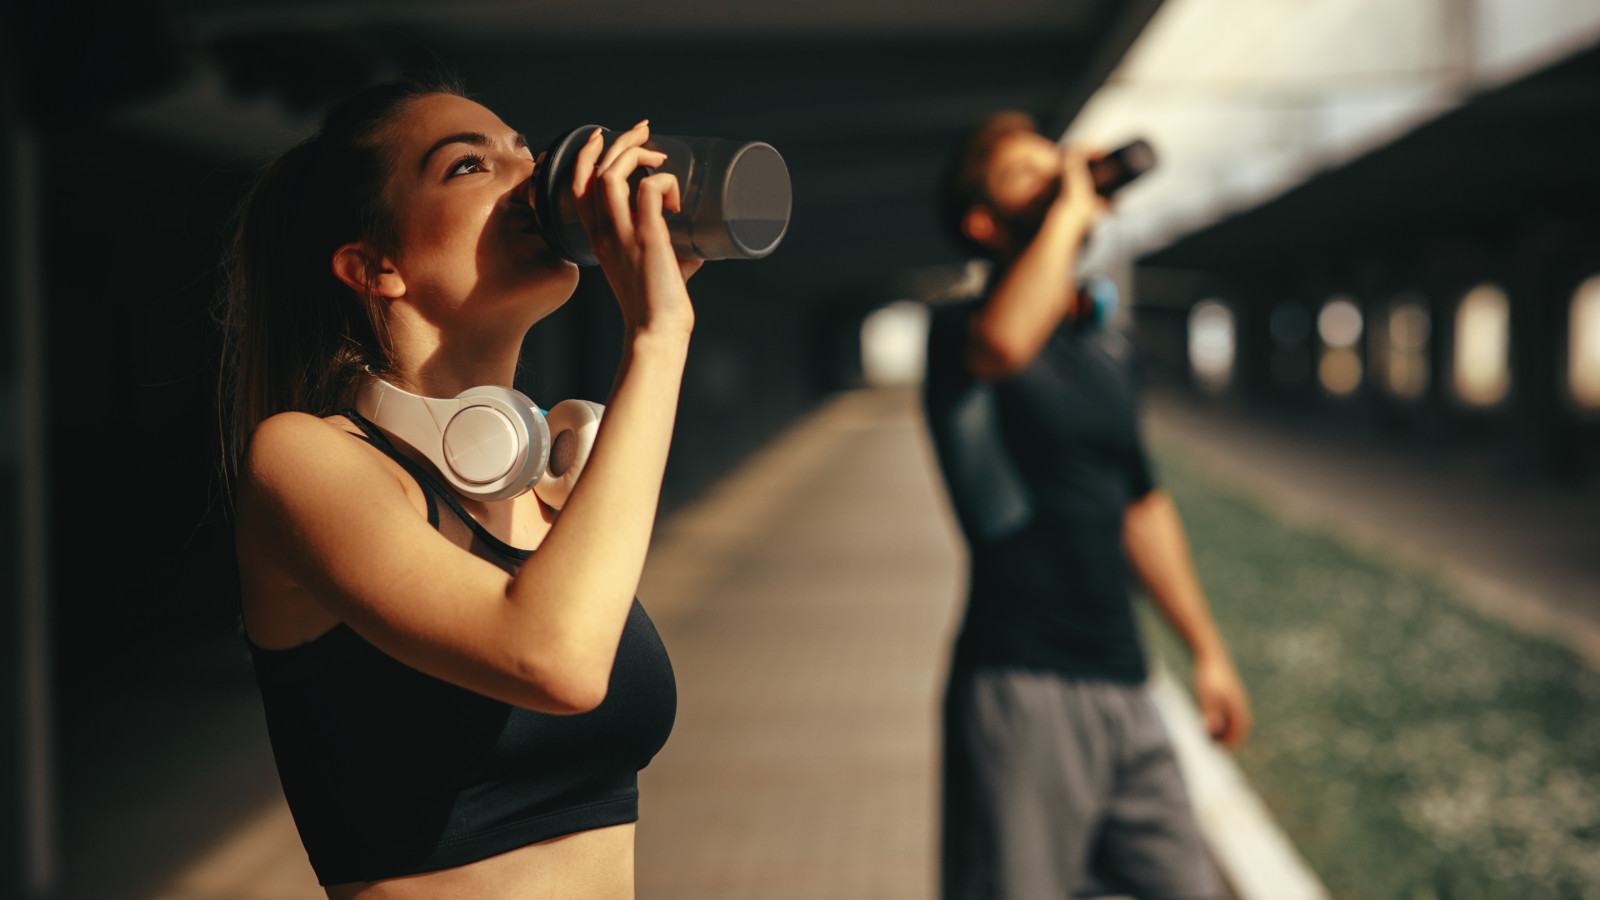 3 Key Takeaways About the Active Nutrition Market & What The Future Holds